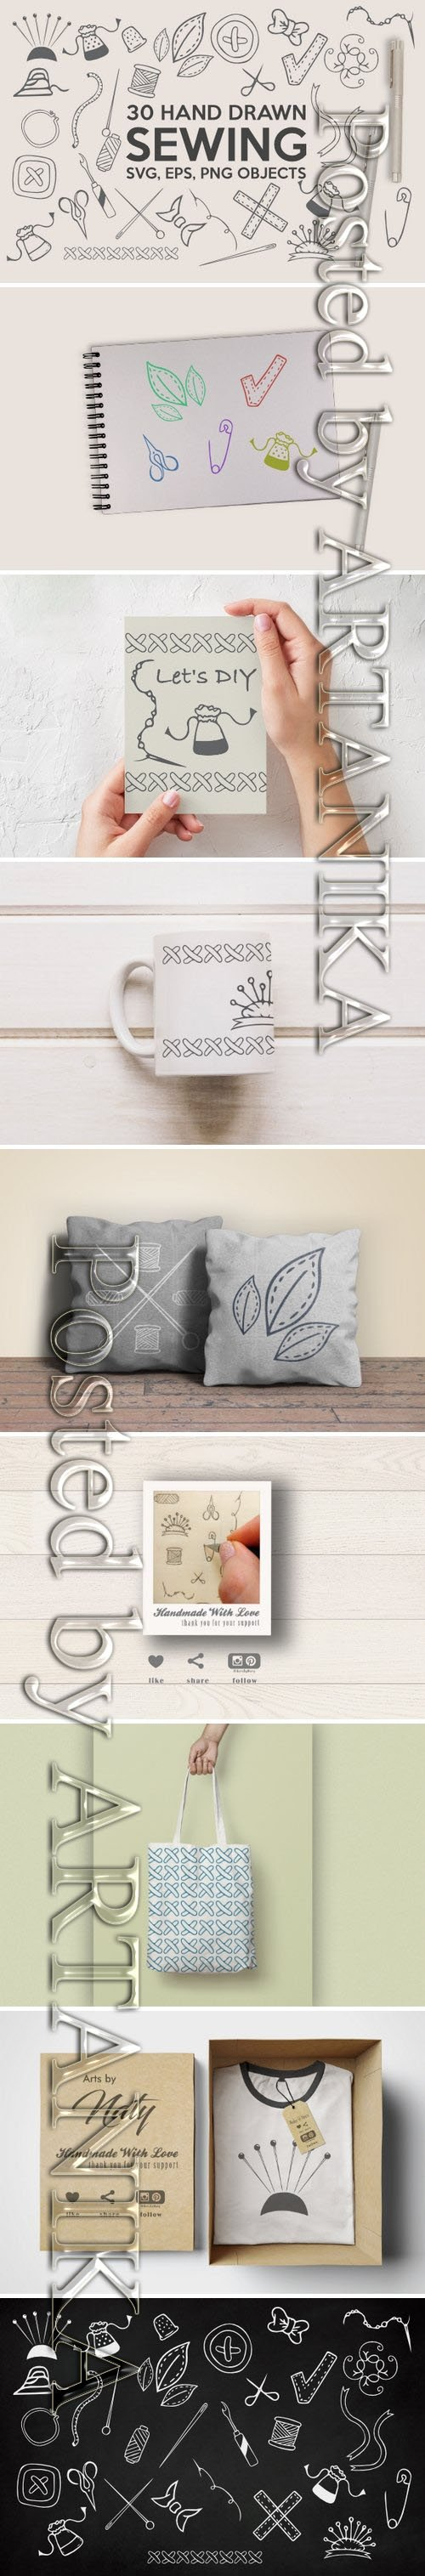 Hand Drawn Sewing Bundle